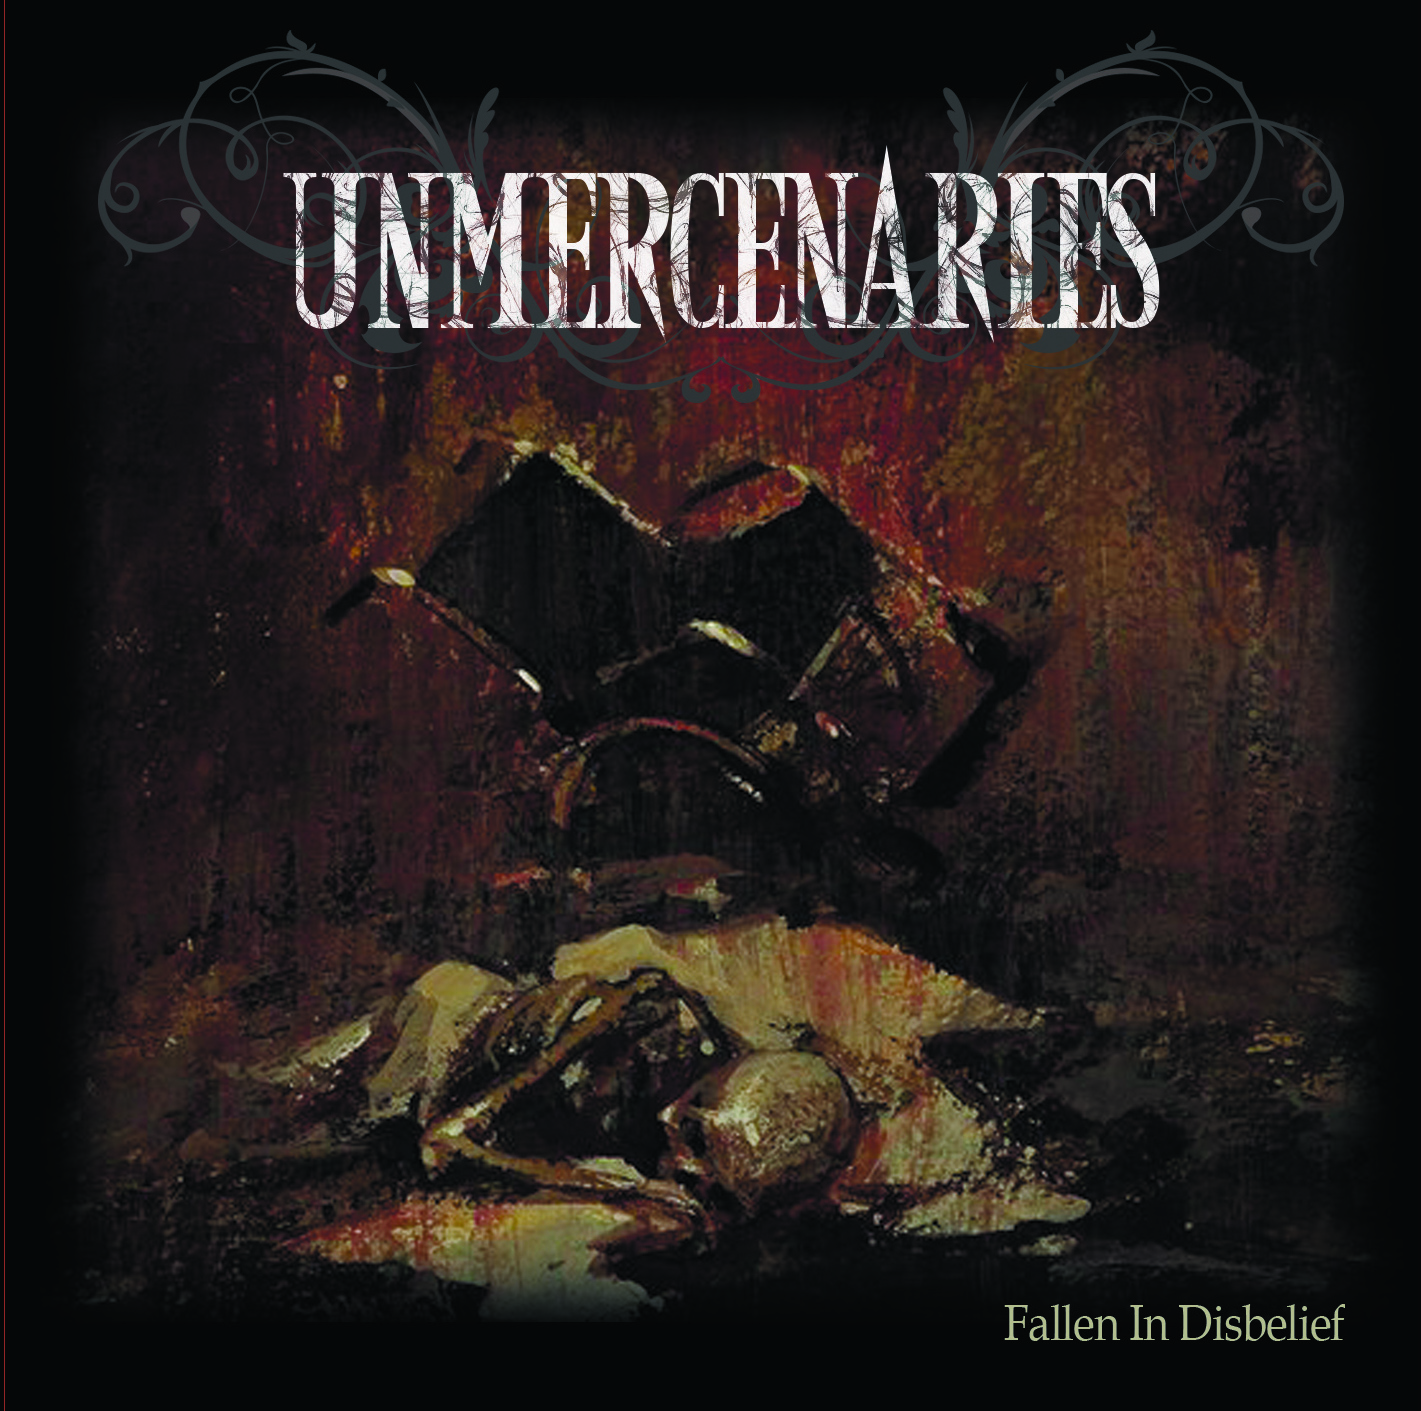 Unmercenaries – Fallen in Disbelief